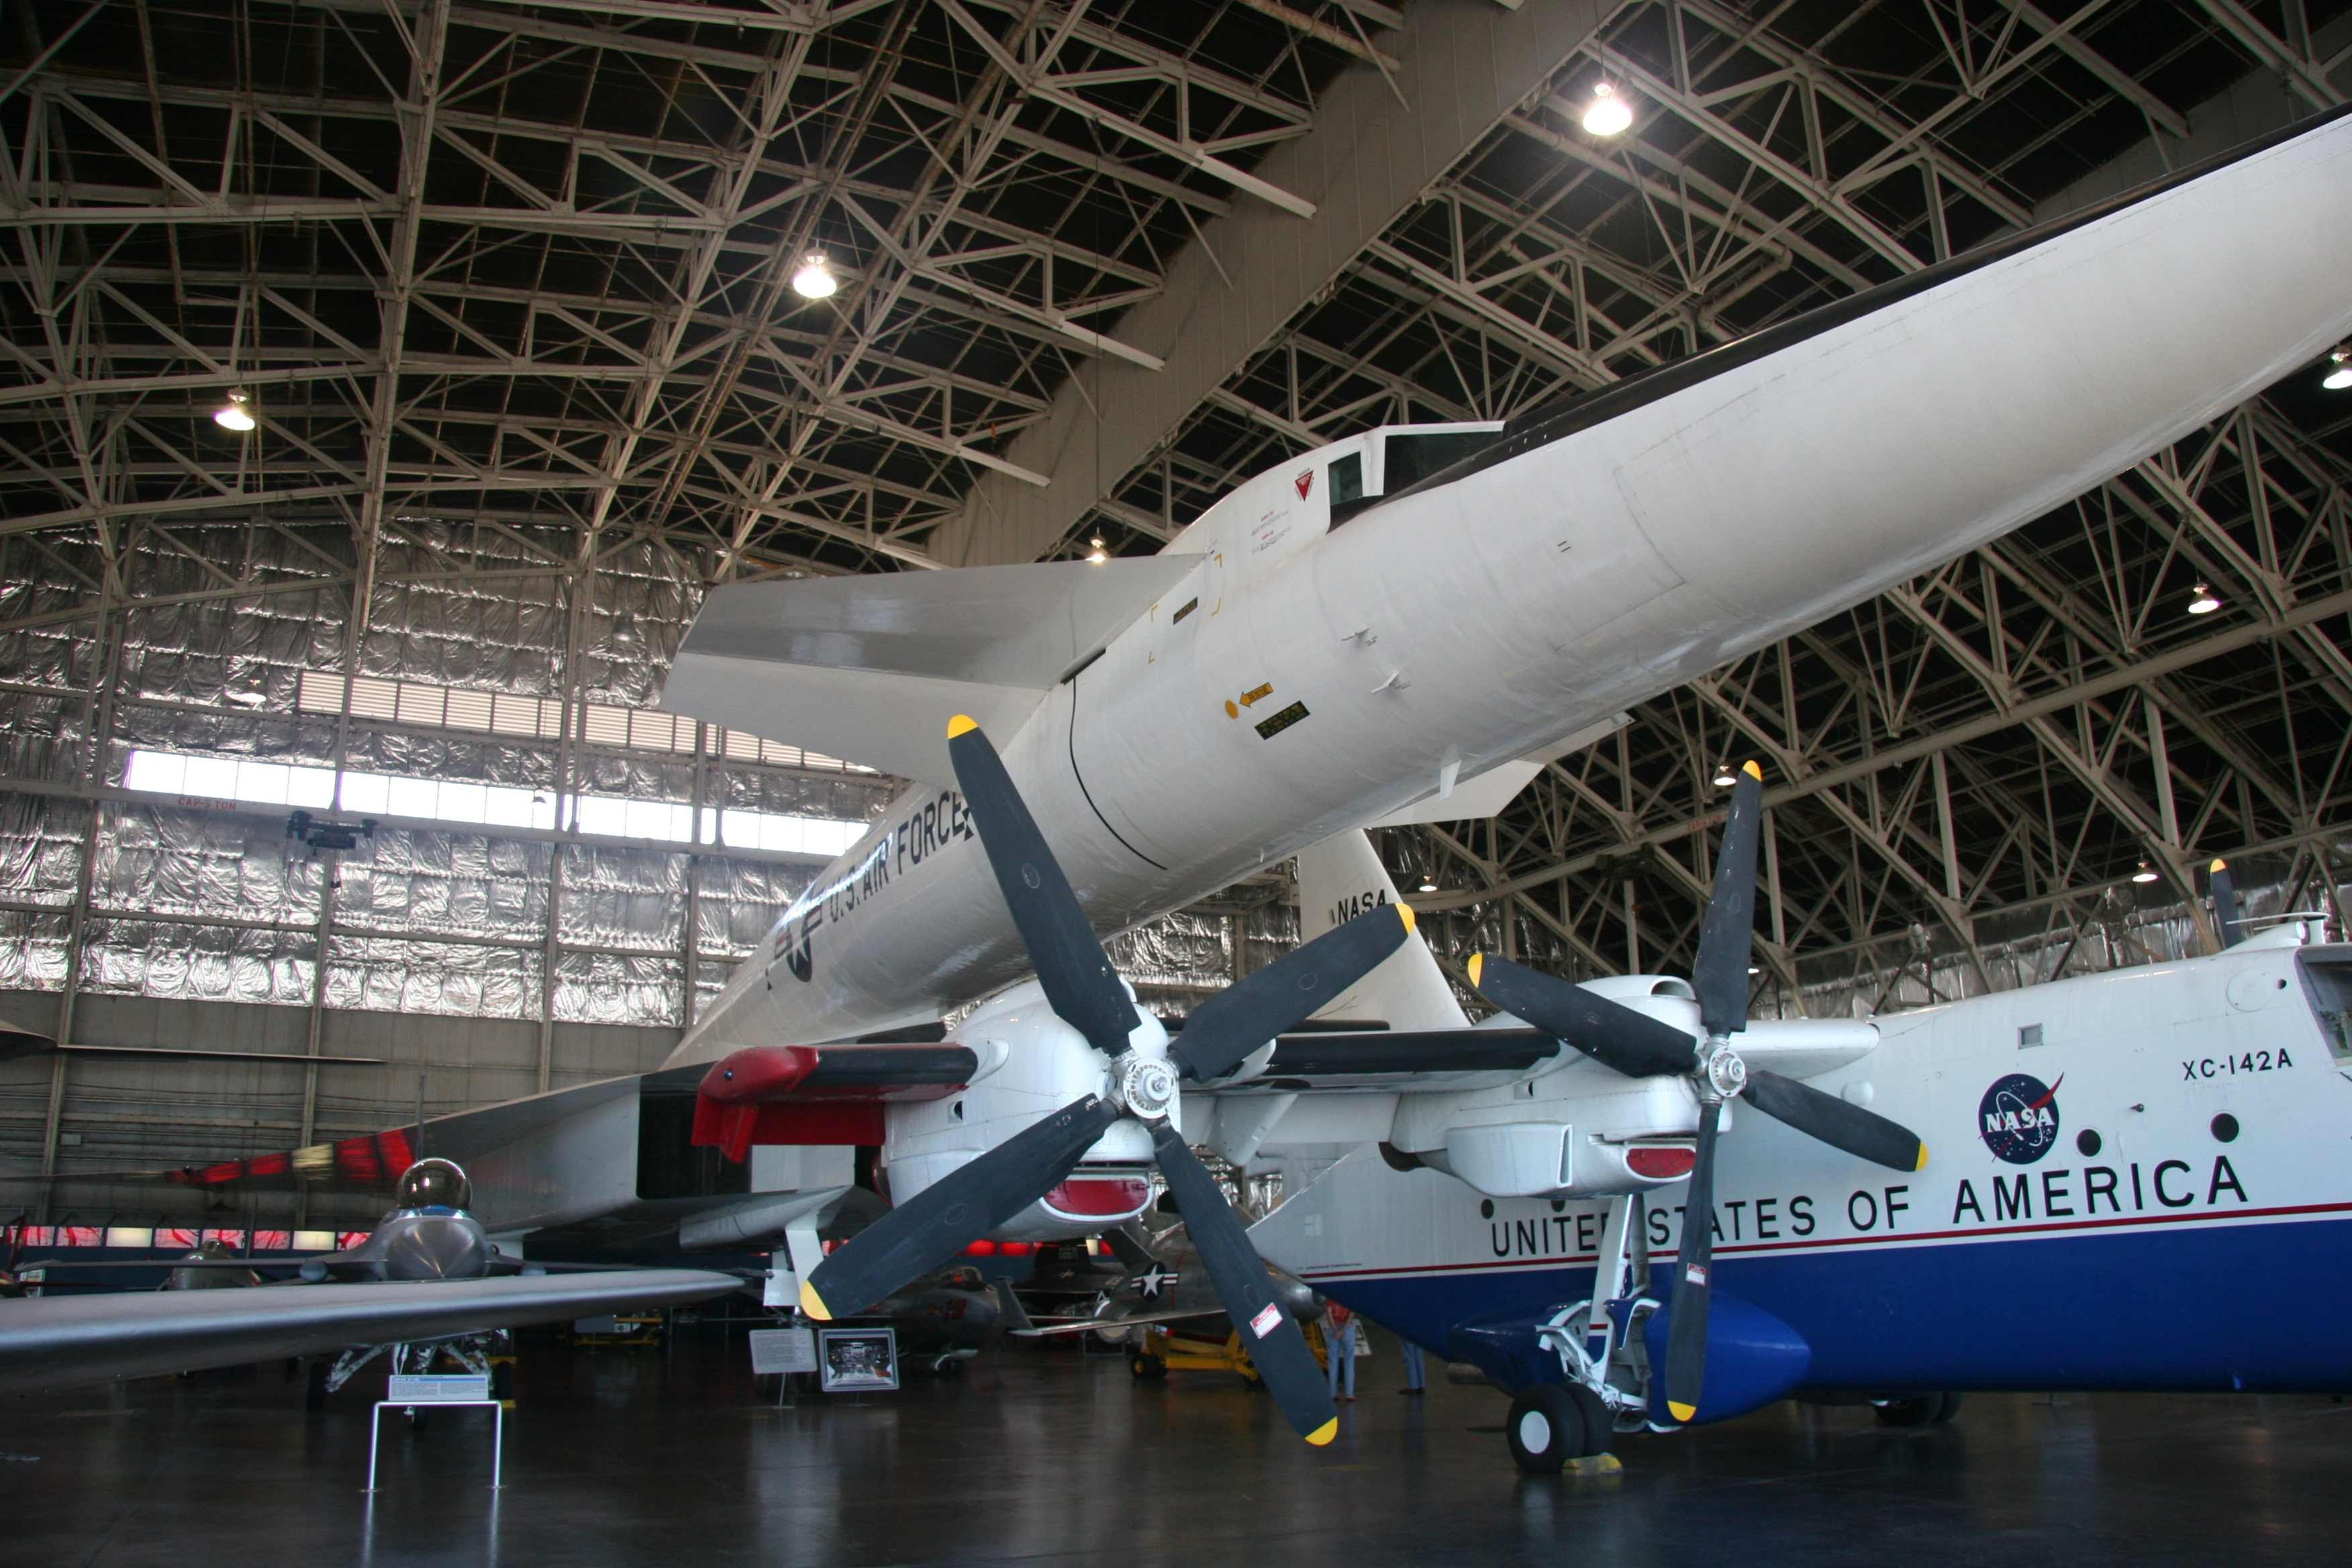 Usairforcemuseum Stcoyle - Us air force museum